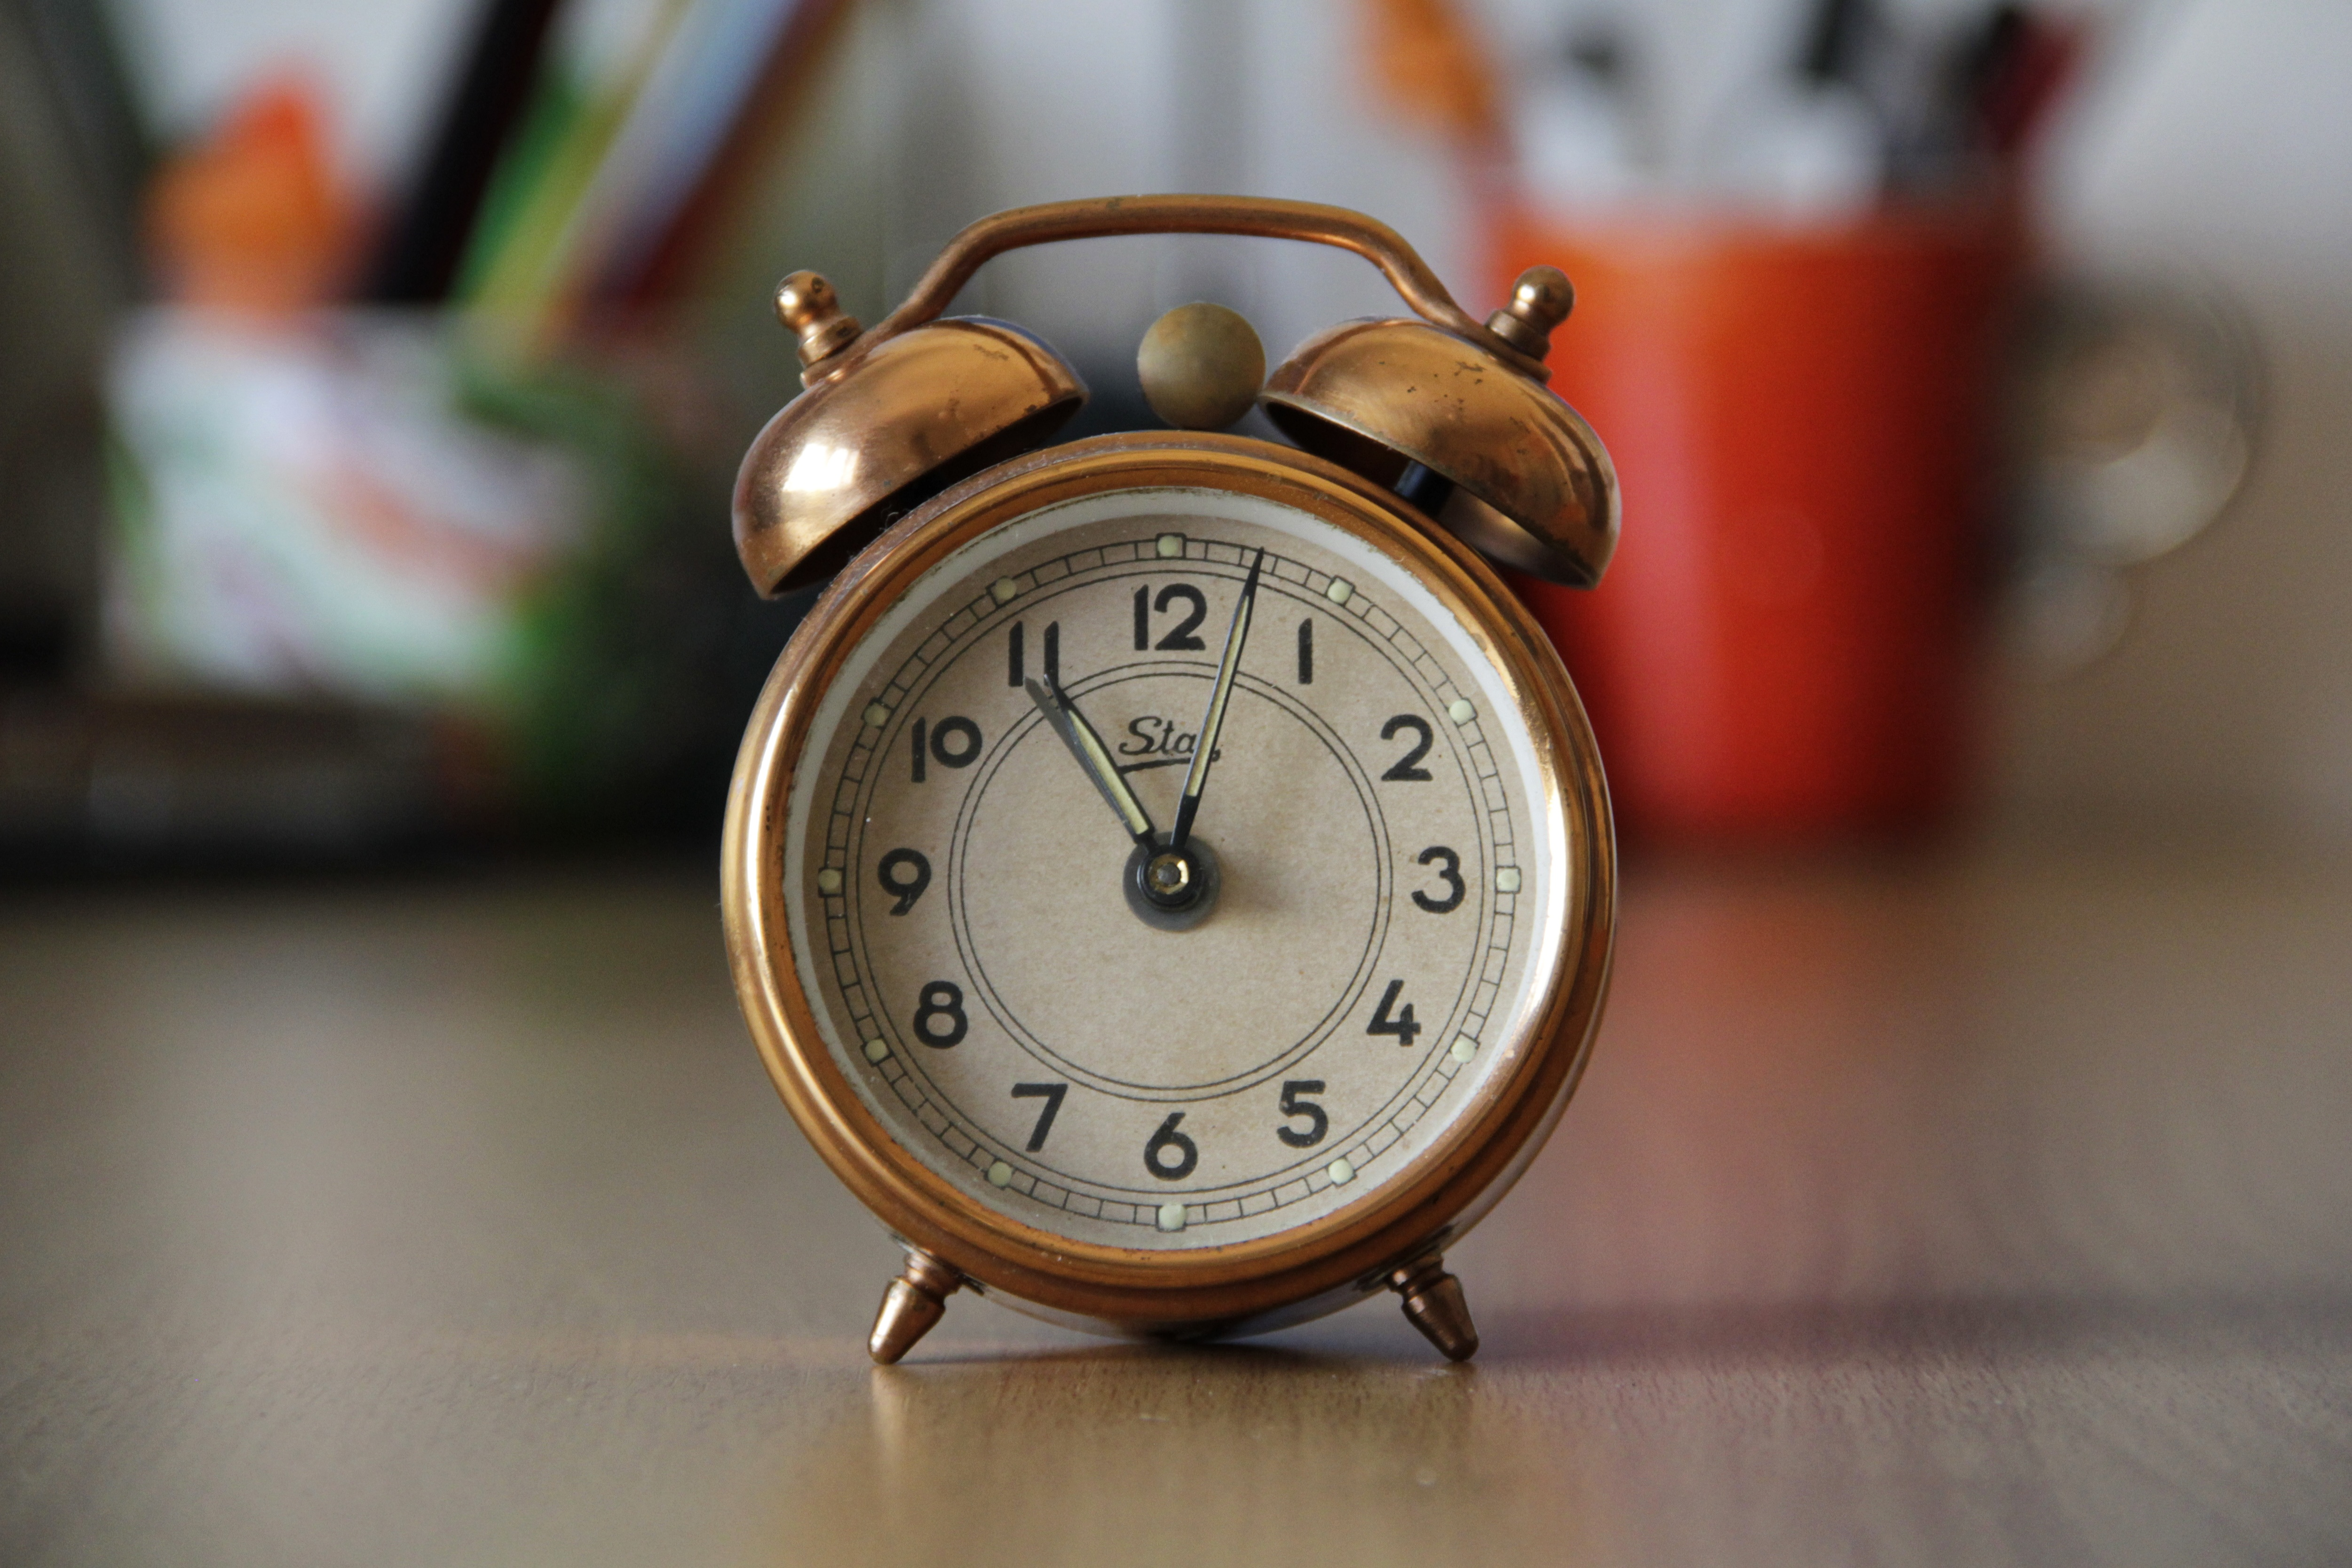 Best Iphone Wallpapers Hd Brass Pocket Watch Pointing At 5 43 183 Free Stock Photo